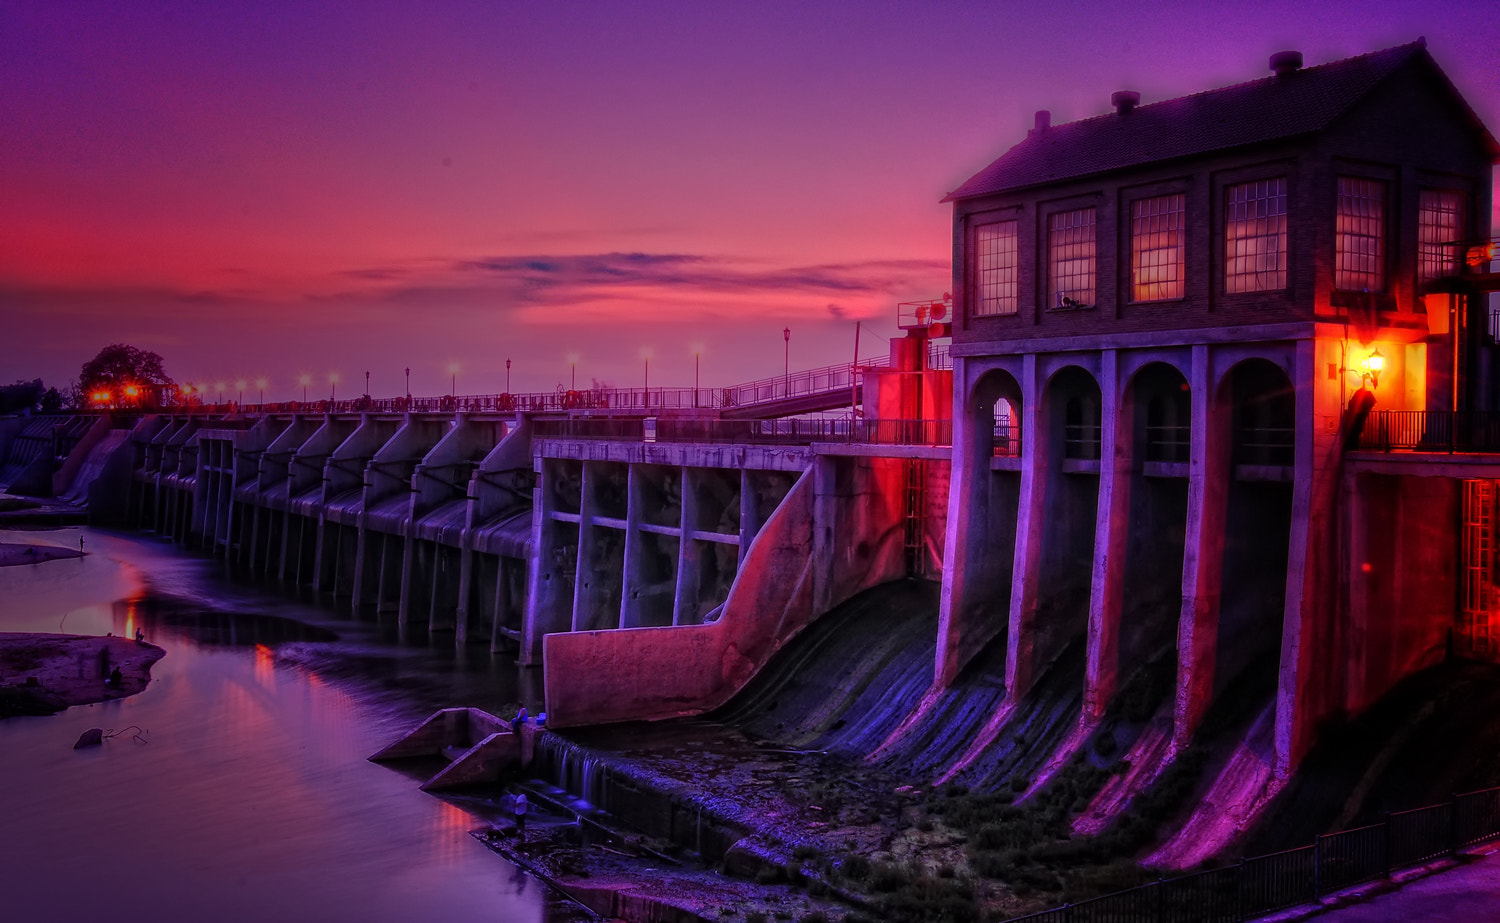 Photograph Sunset Beneath the Dam by C. N. Dastodd on 500px